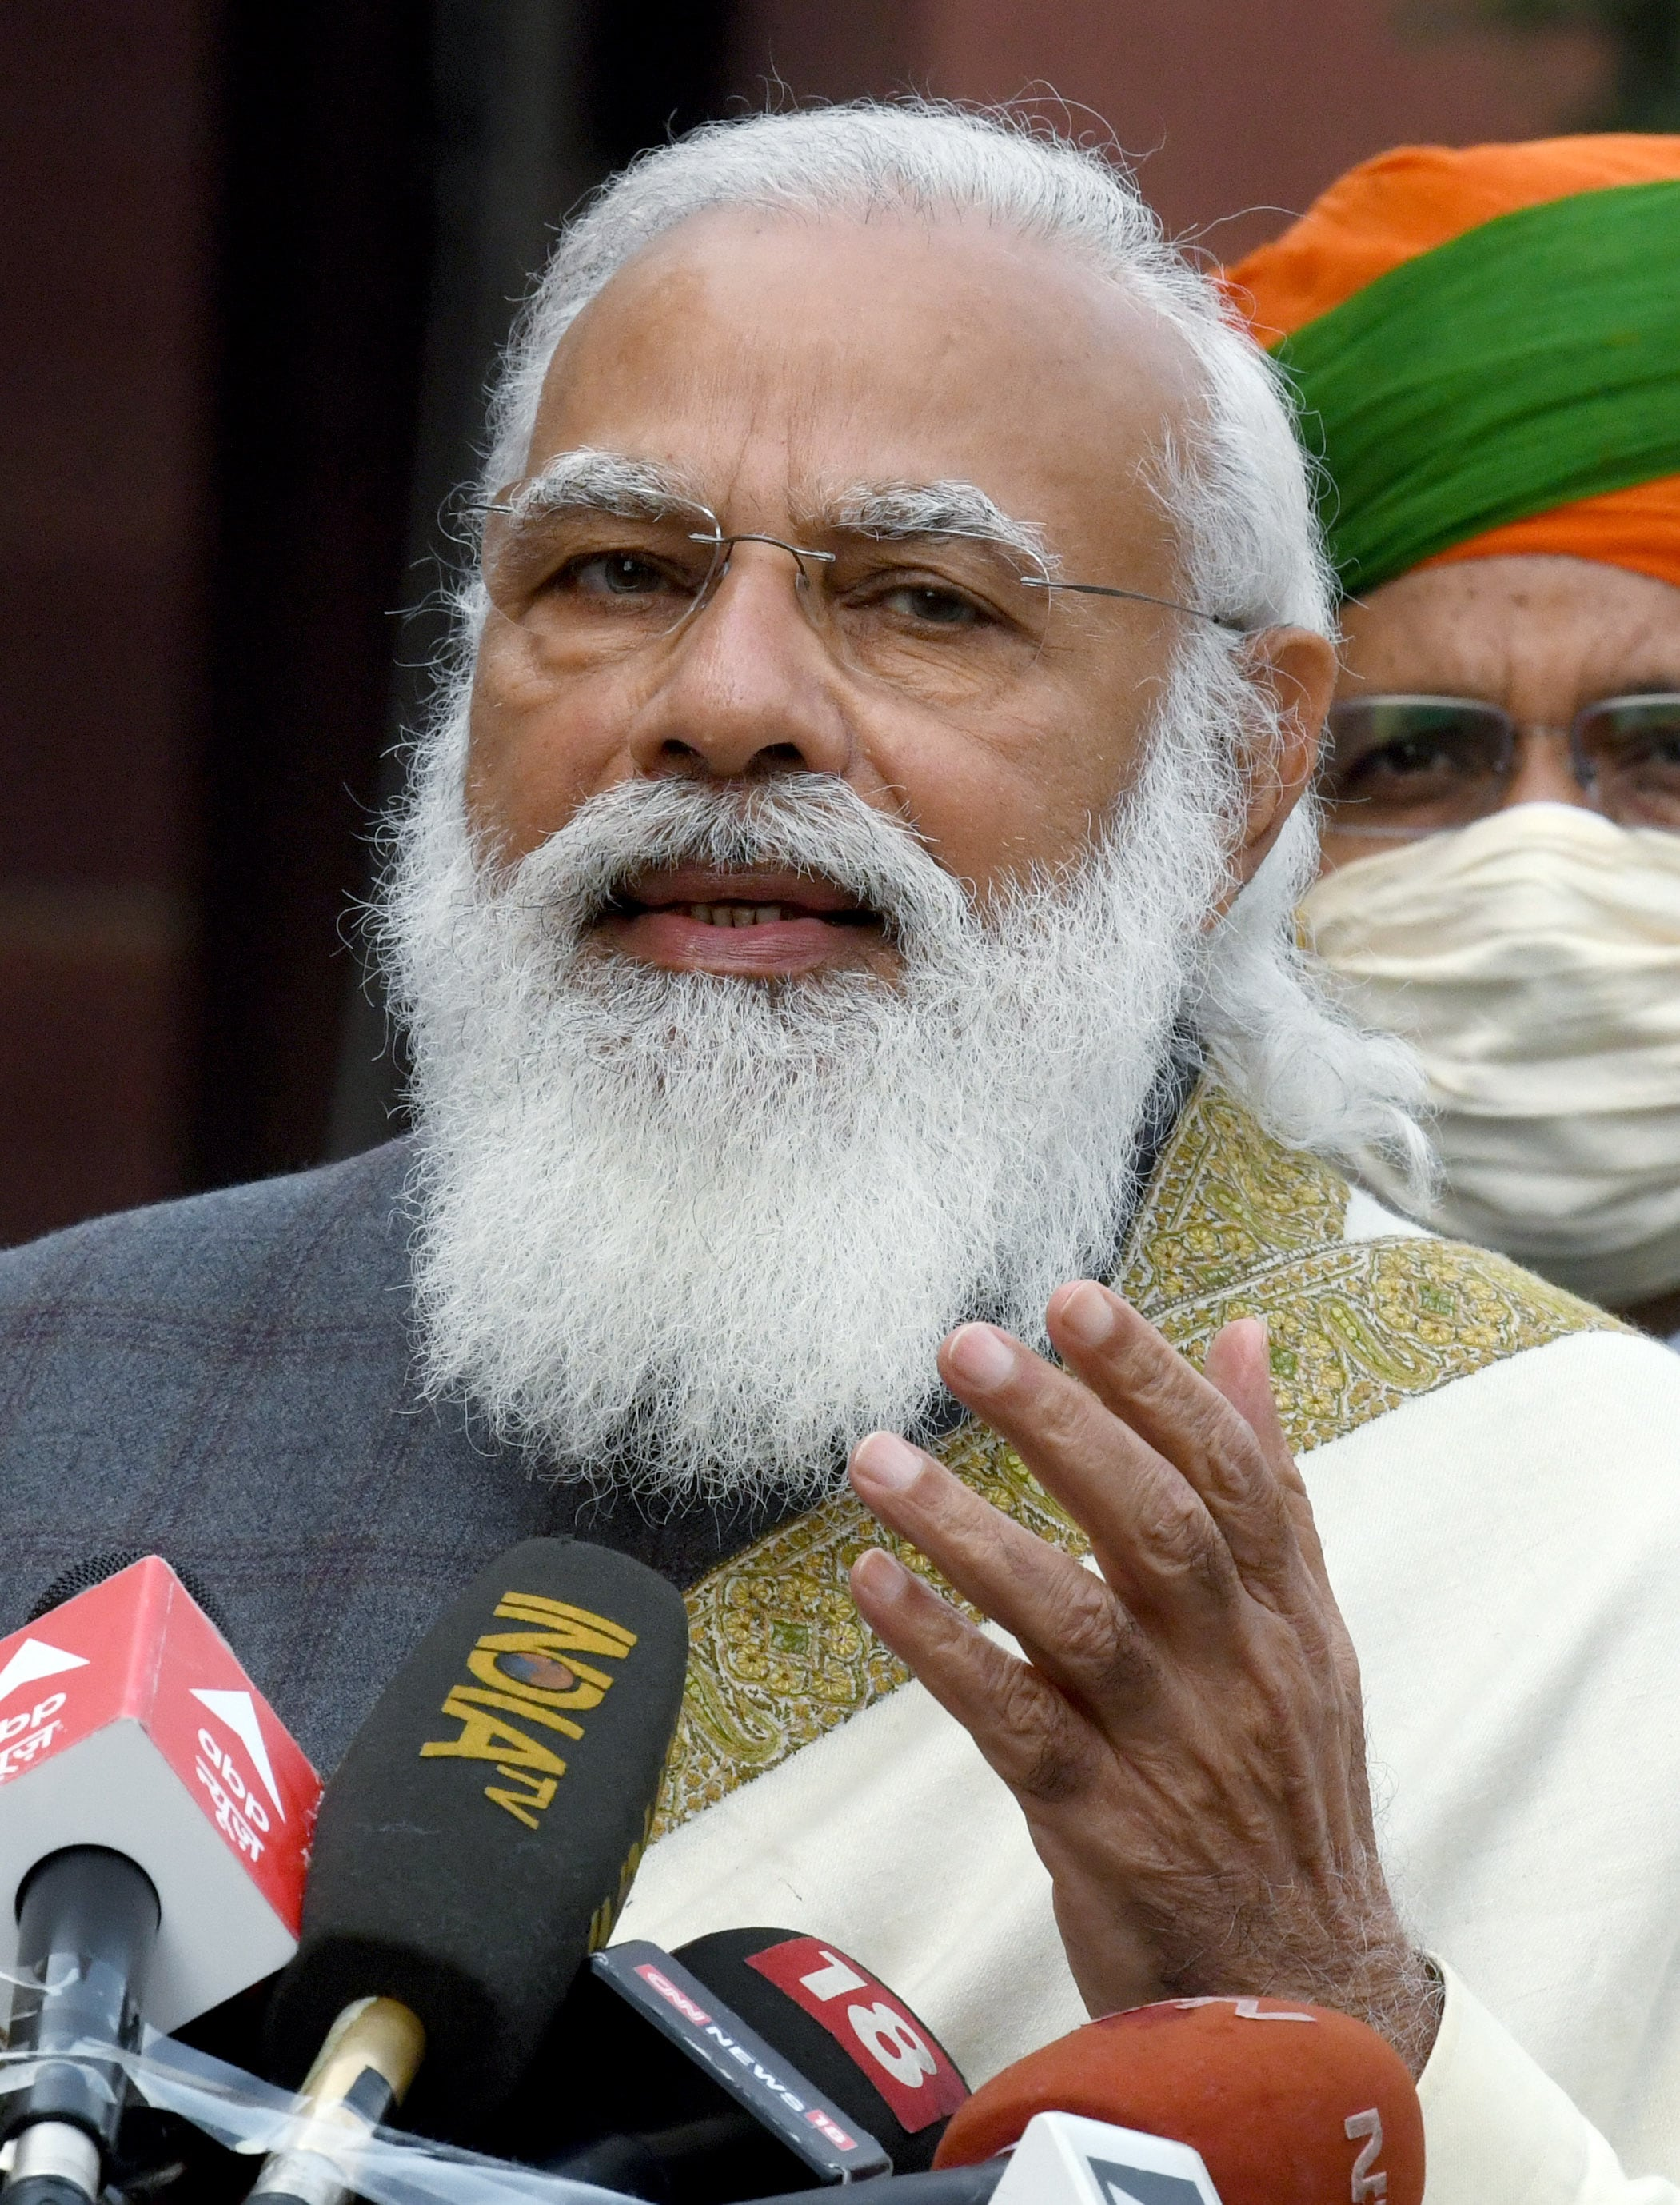 Prime Minister Narendra Modi arrives to address media before the Budget Session of Parliament, in New Delhi on Friday.